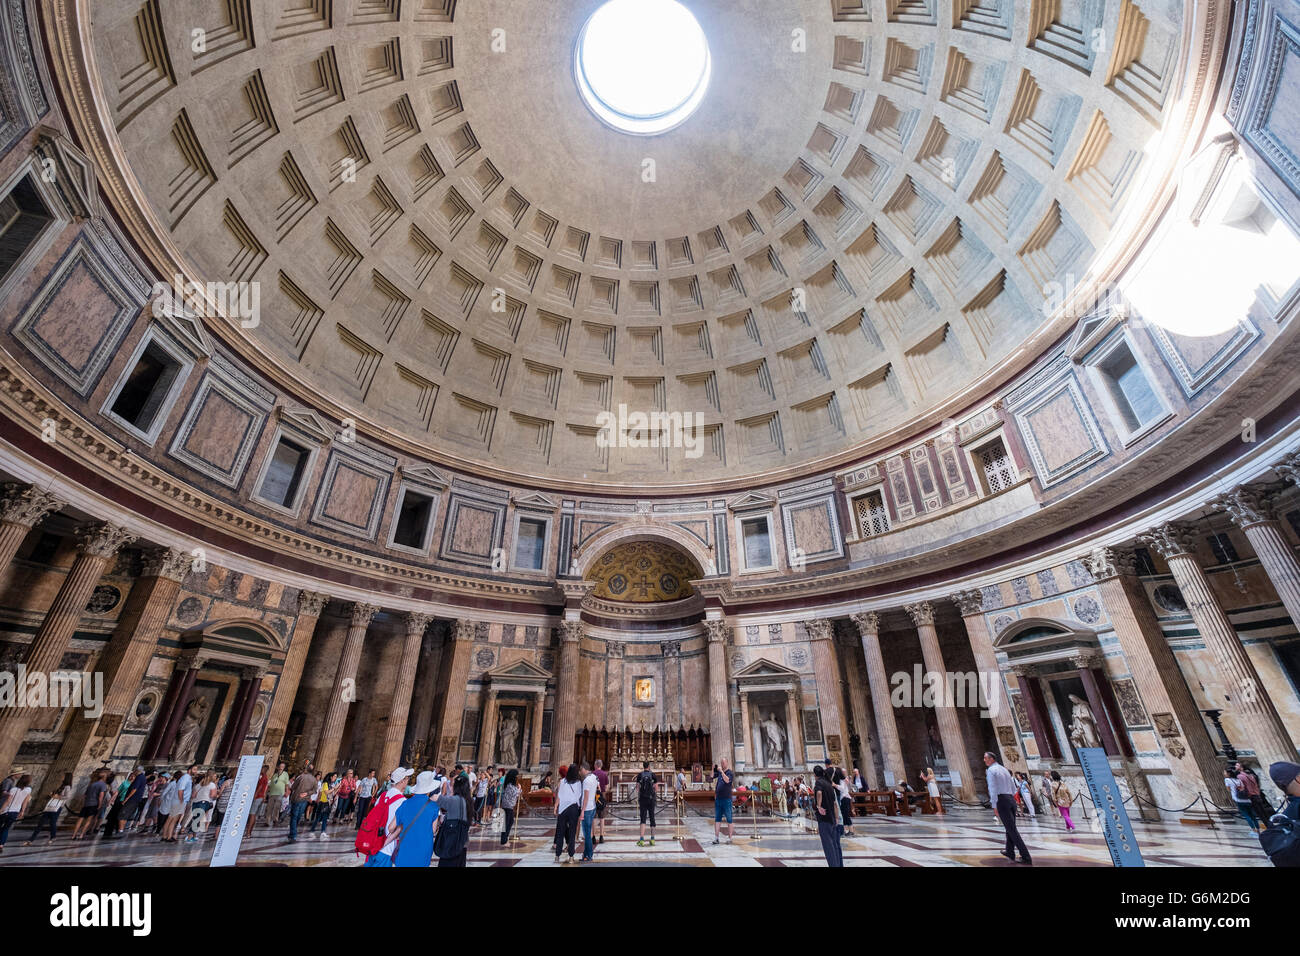 Interior of the Pantheon,  on Piazza della Rotonda,  Rome, Italy - Stock Image